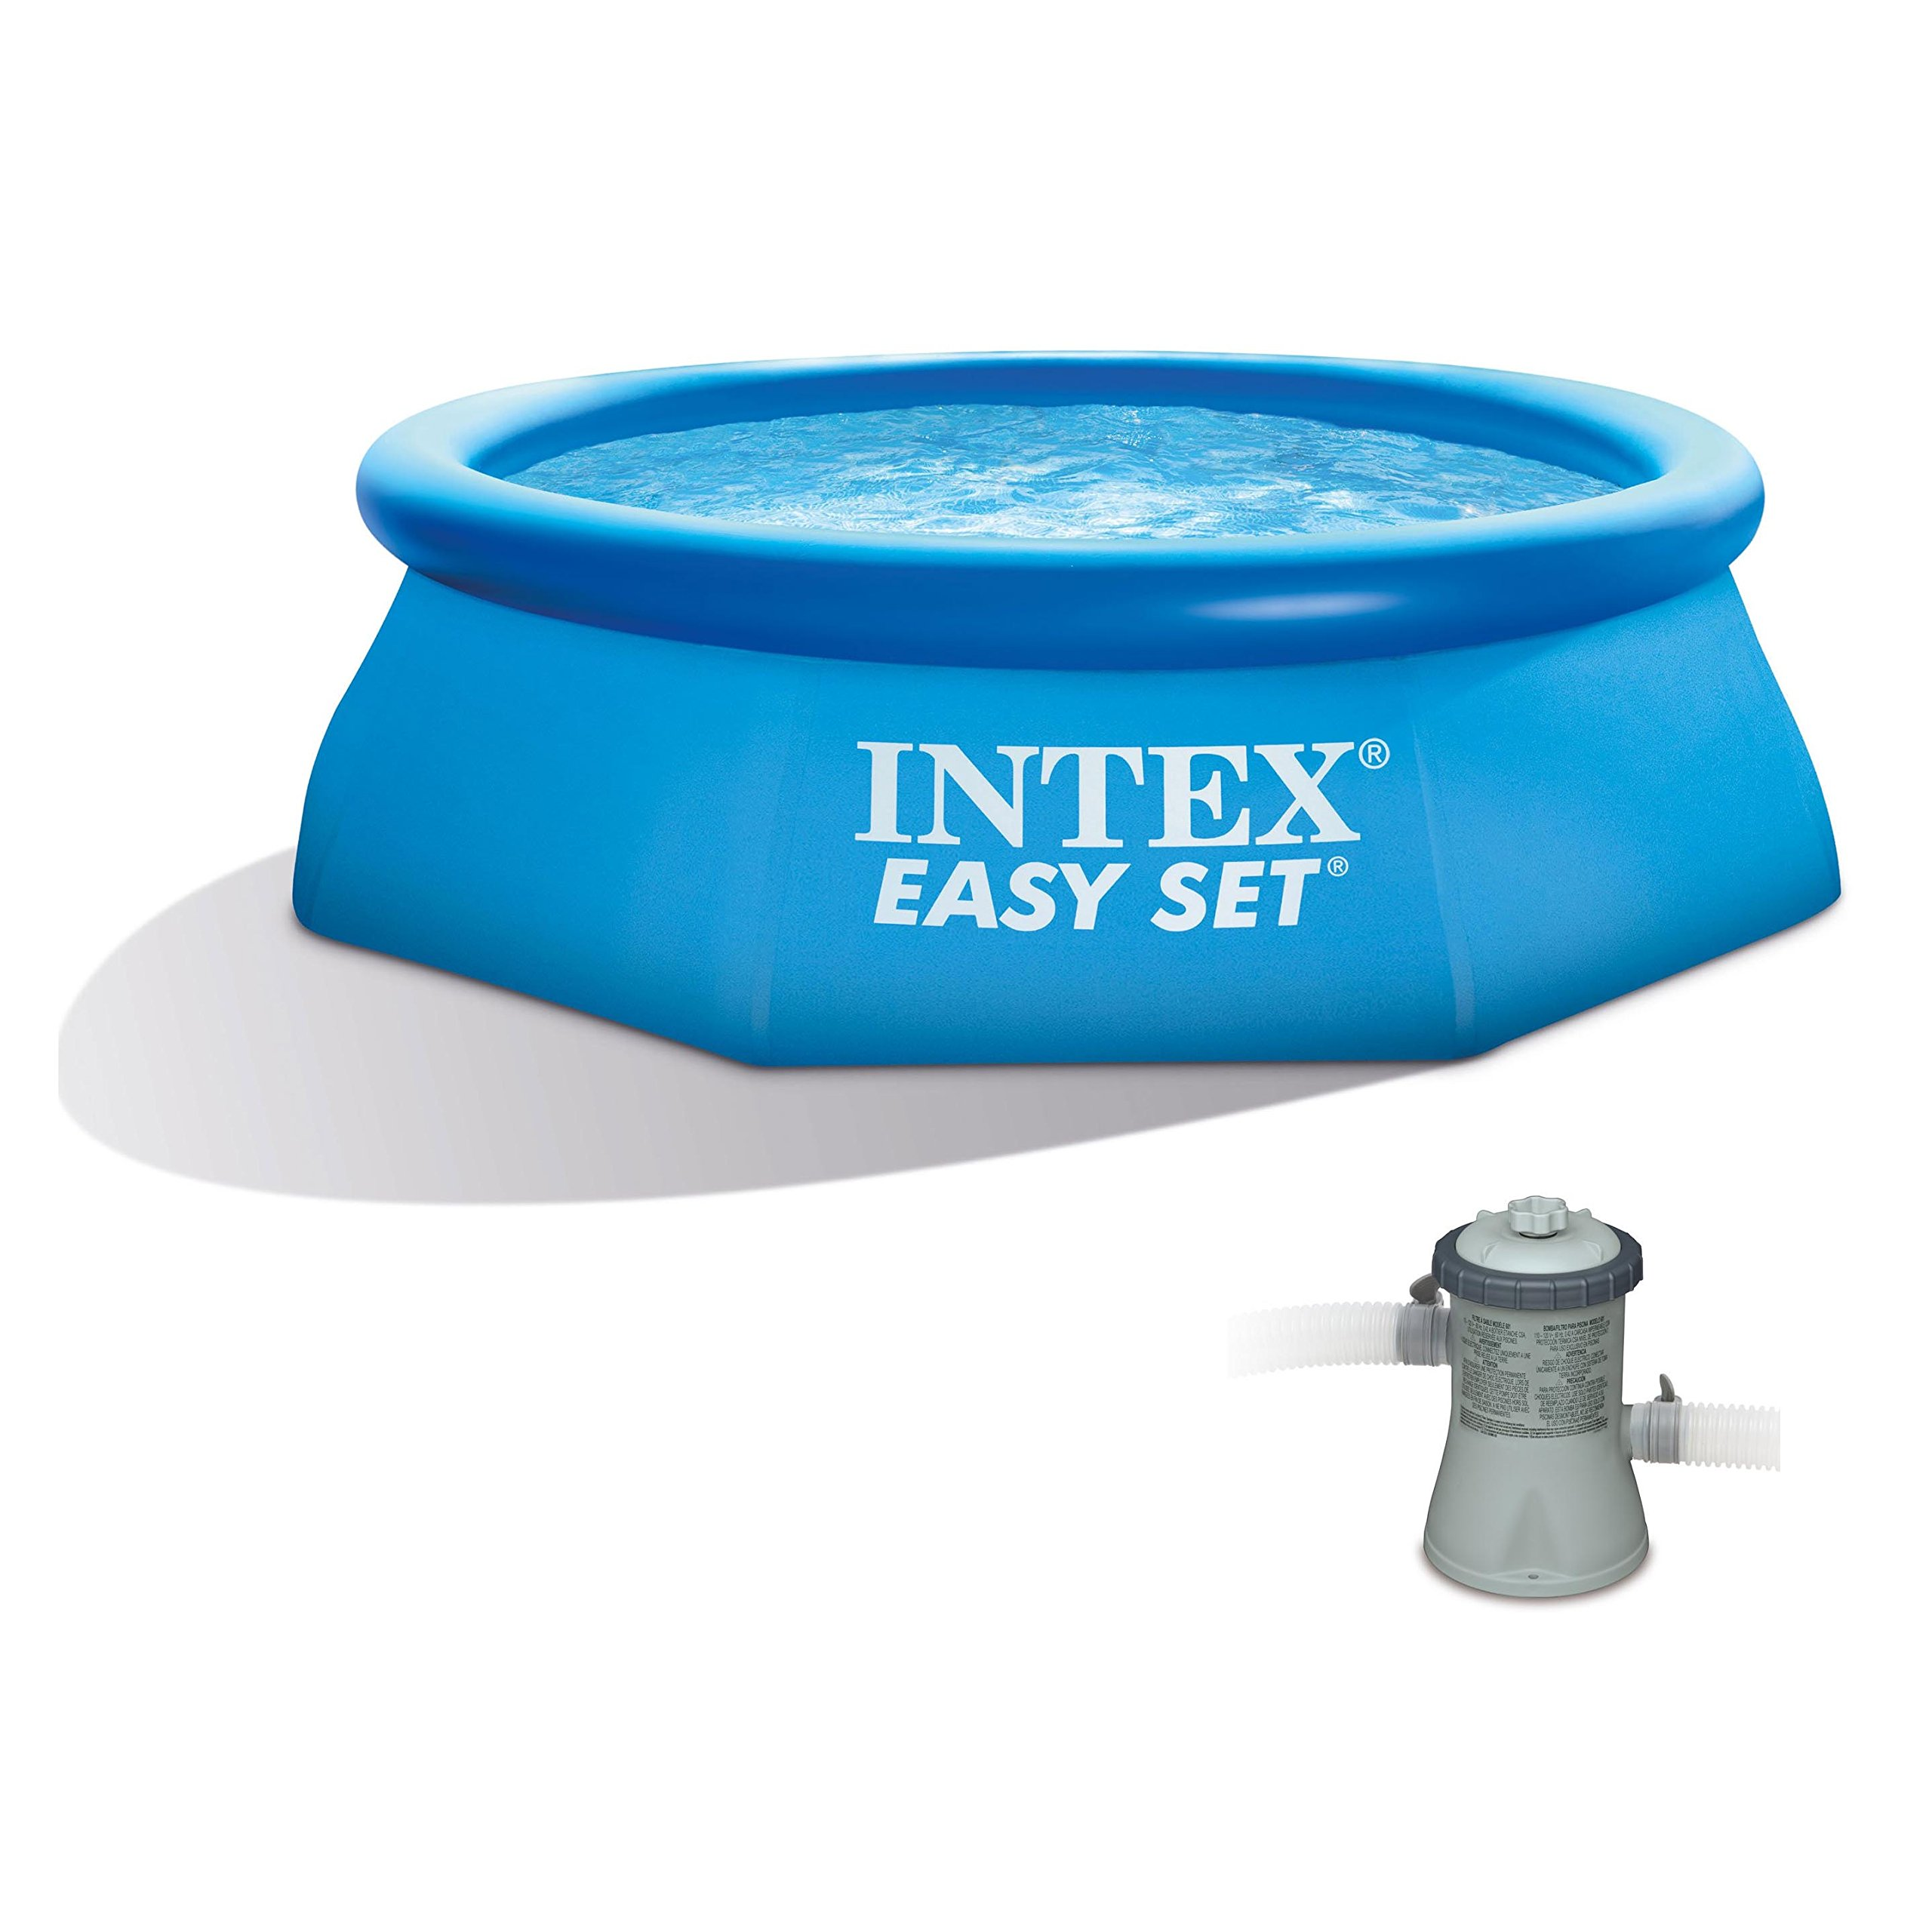 Intex 8' x 30'' Easy Set Inflatable Swimming Pool with 330 GPH Filter Pump